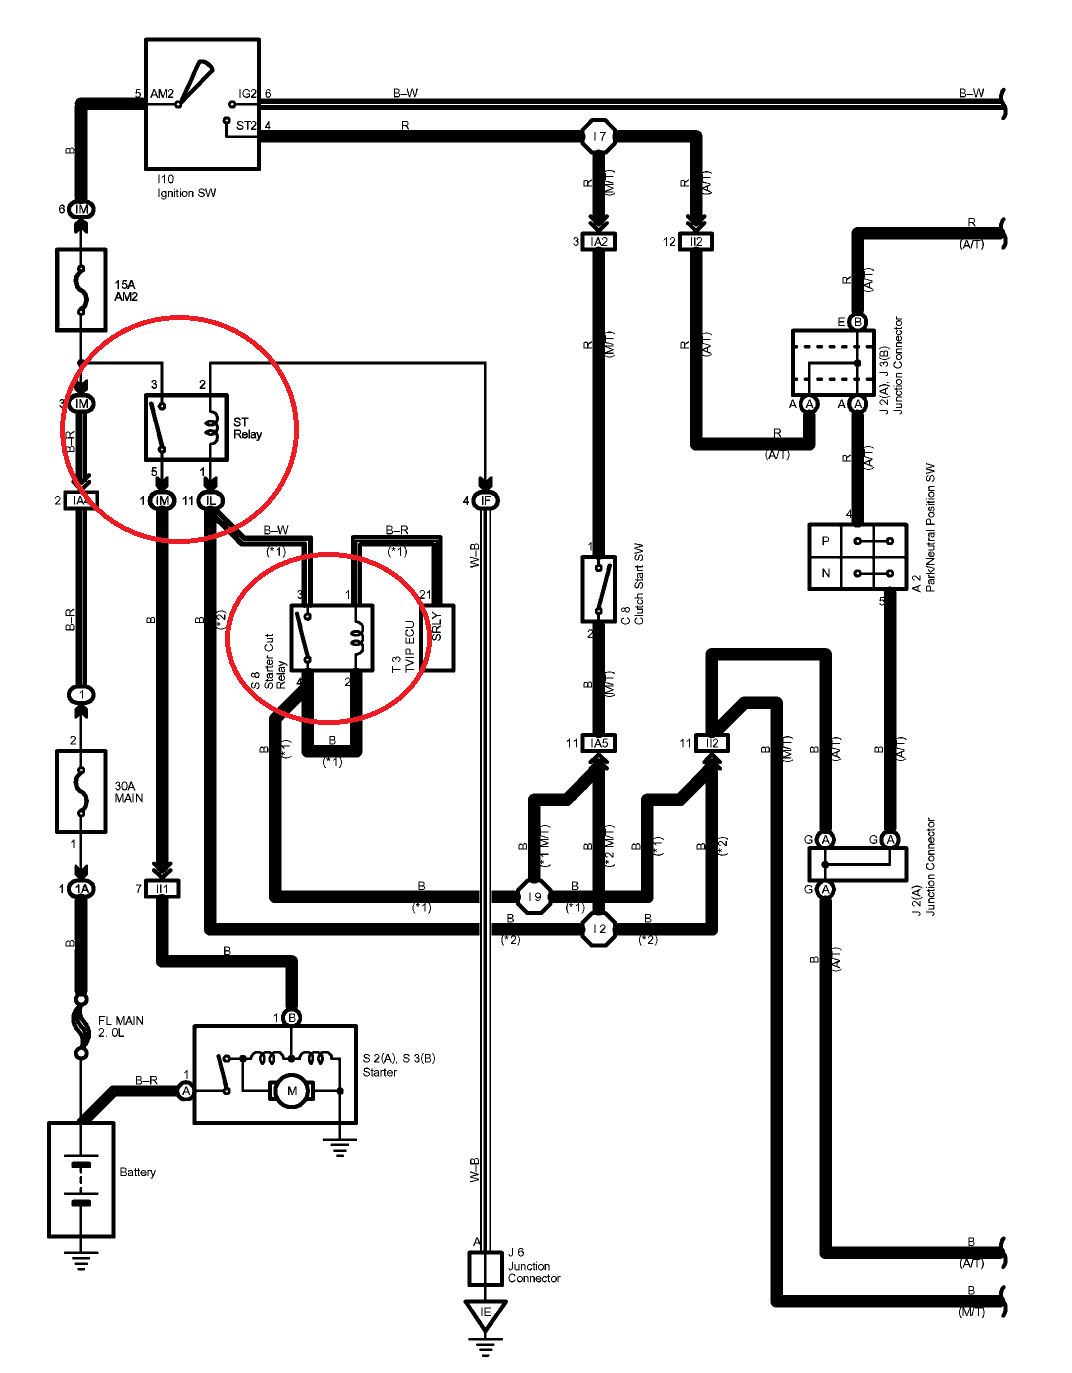 2005 Toyota Corolla S  Battery Has Tested Good  All Fuses Have Tested Good  100a Replaced  And